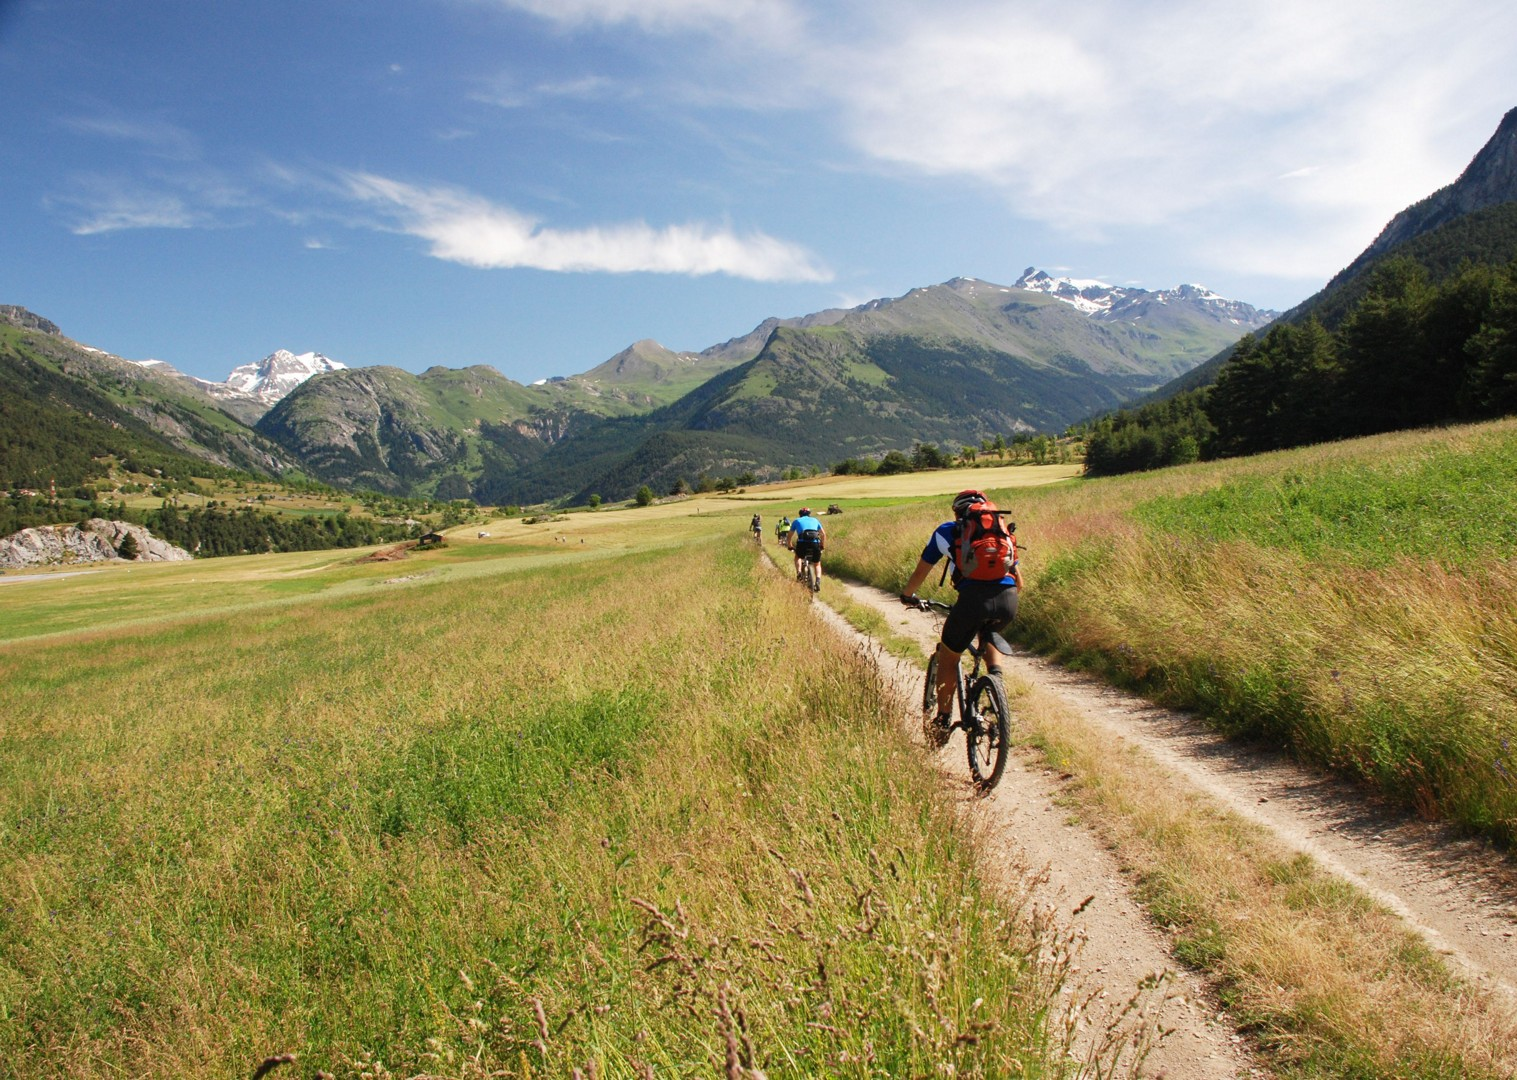 singletrack-mountain-bike-holiday-in-the-alps-alpine-adventure.JPG - Italy and France - Alpine Adventure - Guided Mountain Bike Holiday - Mountain Biking